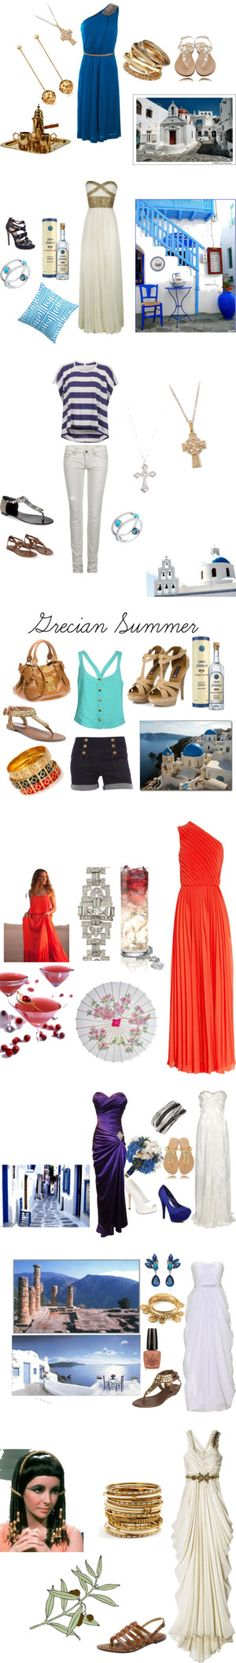 """Greek Fashion"" by hlm91 on Polyvore"